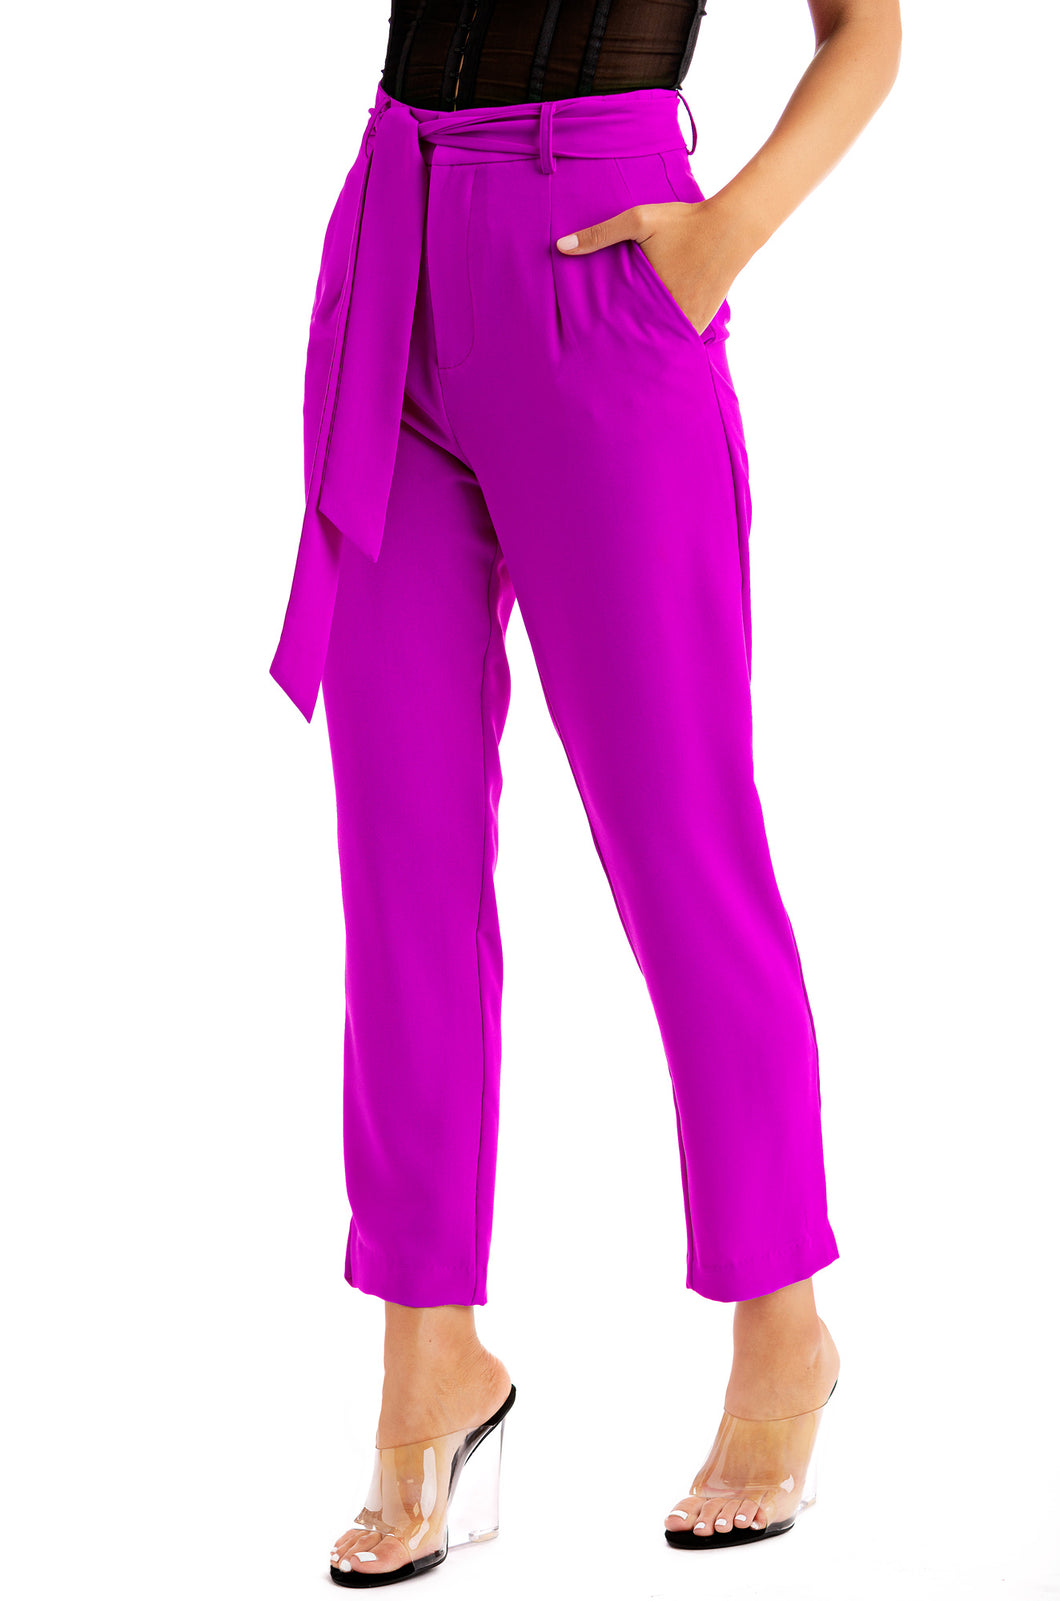 Above Average Pants - Purple